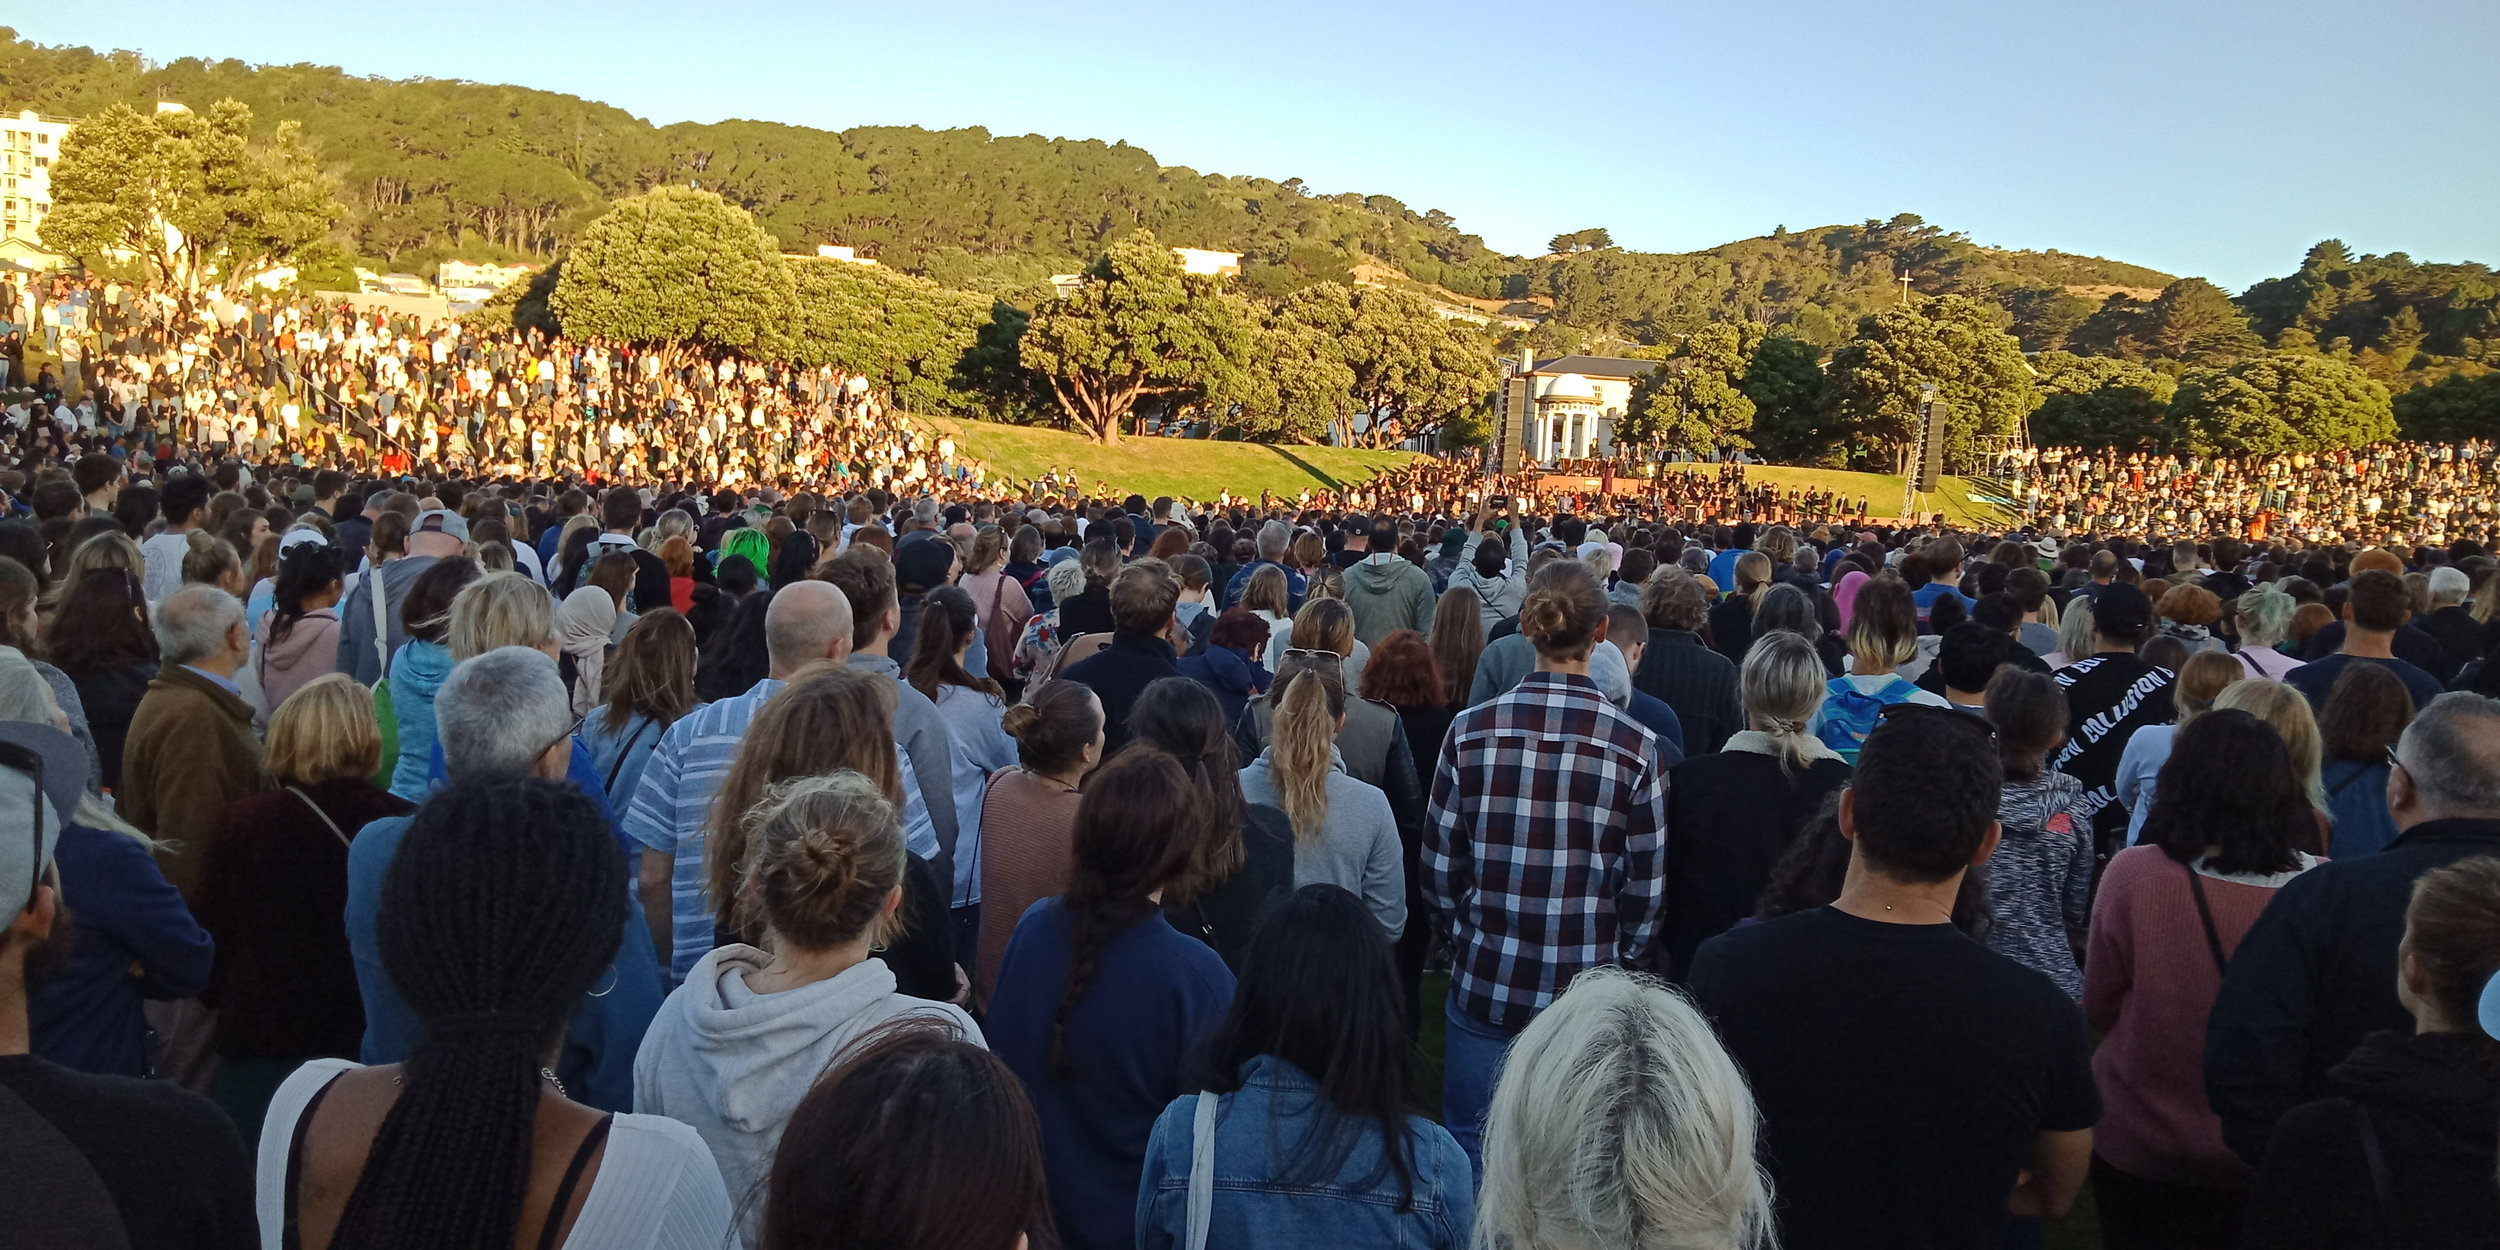 A vigil is held in Wellington for the victims of recent terrorist attacks on two Christchurch mosques. (Wikimedia Commons)